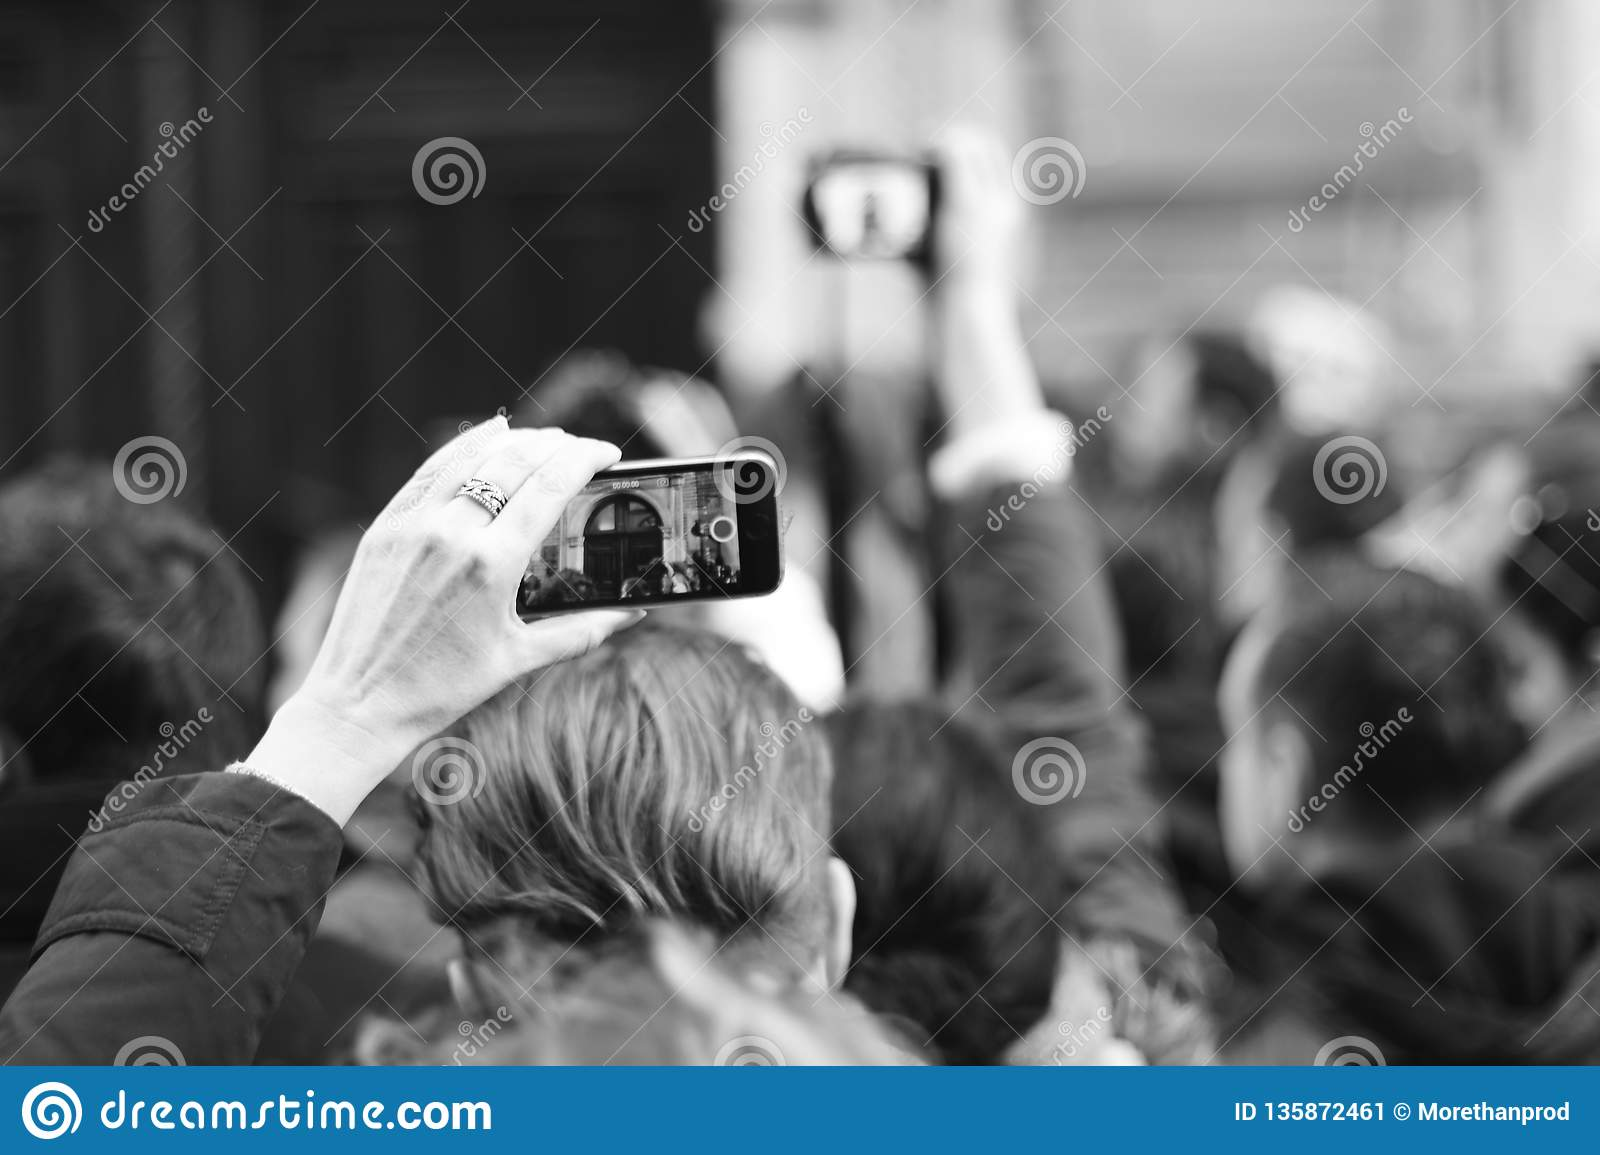 People are waiting for a star. The crowd shoots a star on the phone. Paparazzi everywhere. Journalists are waiting for a star